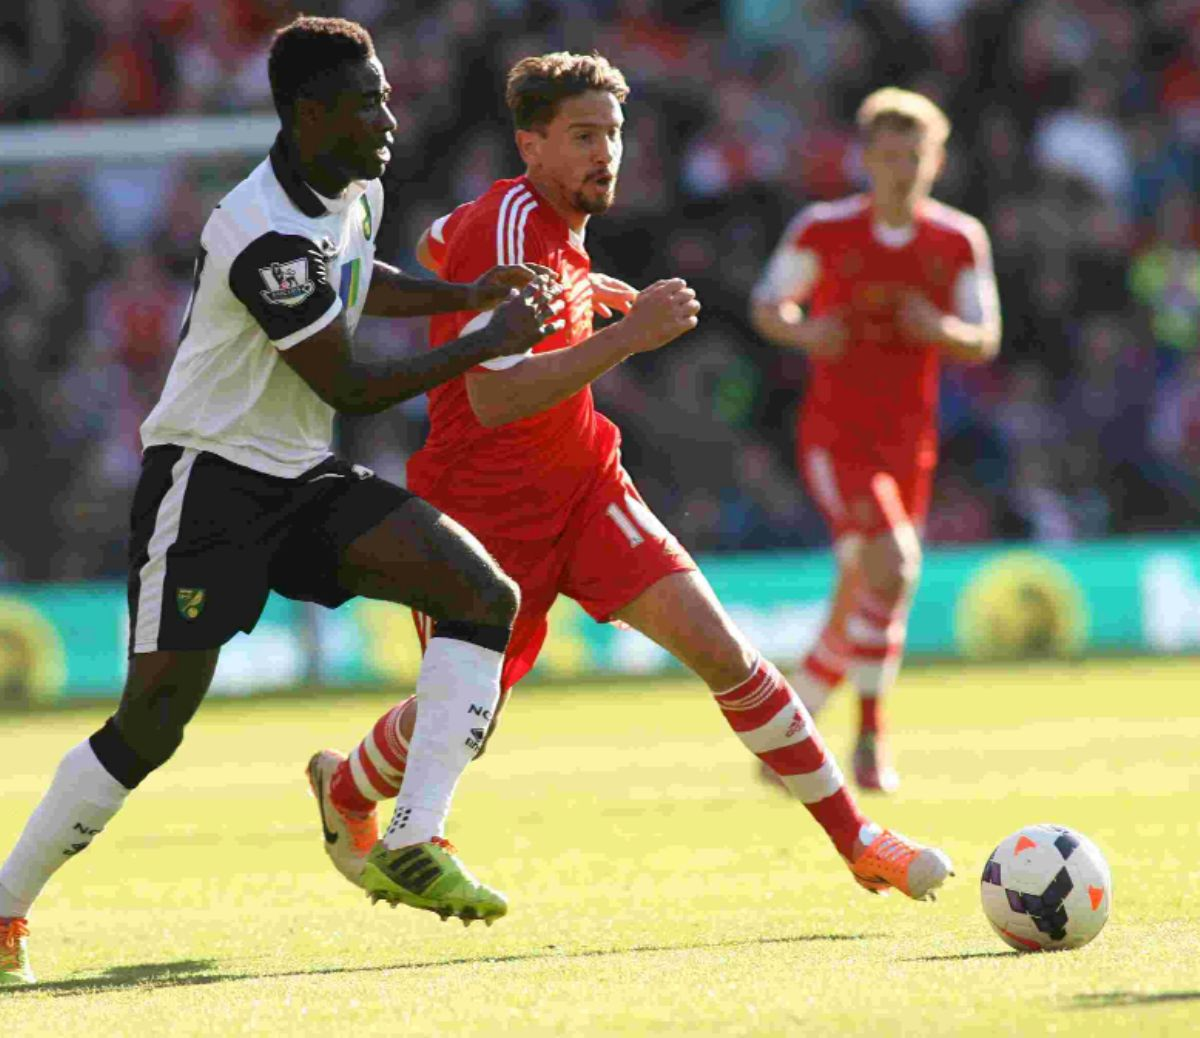 Gaston Ramirez against Norwich.